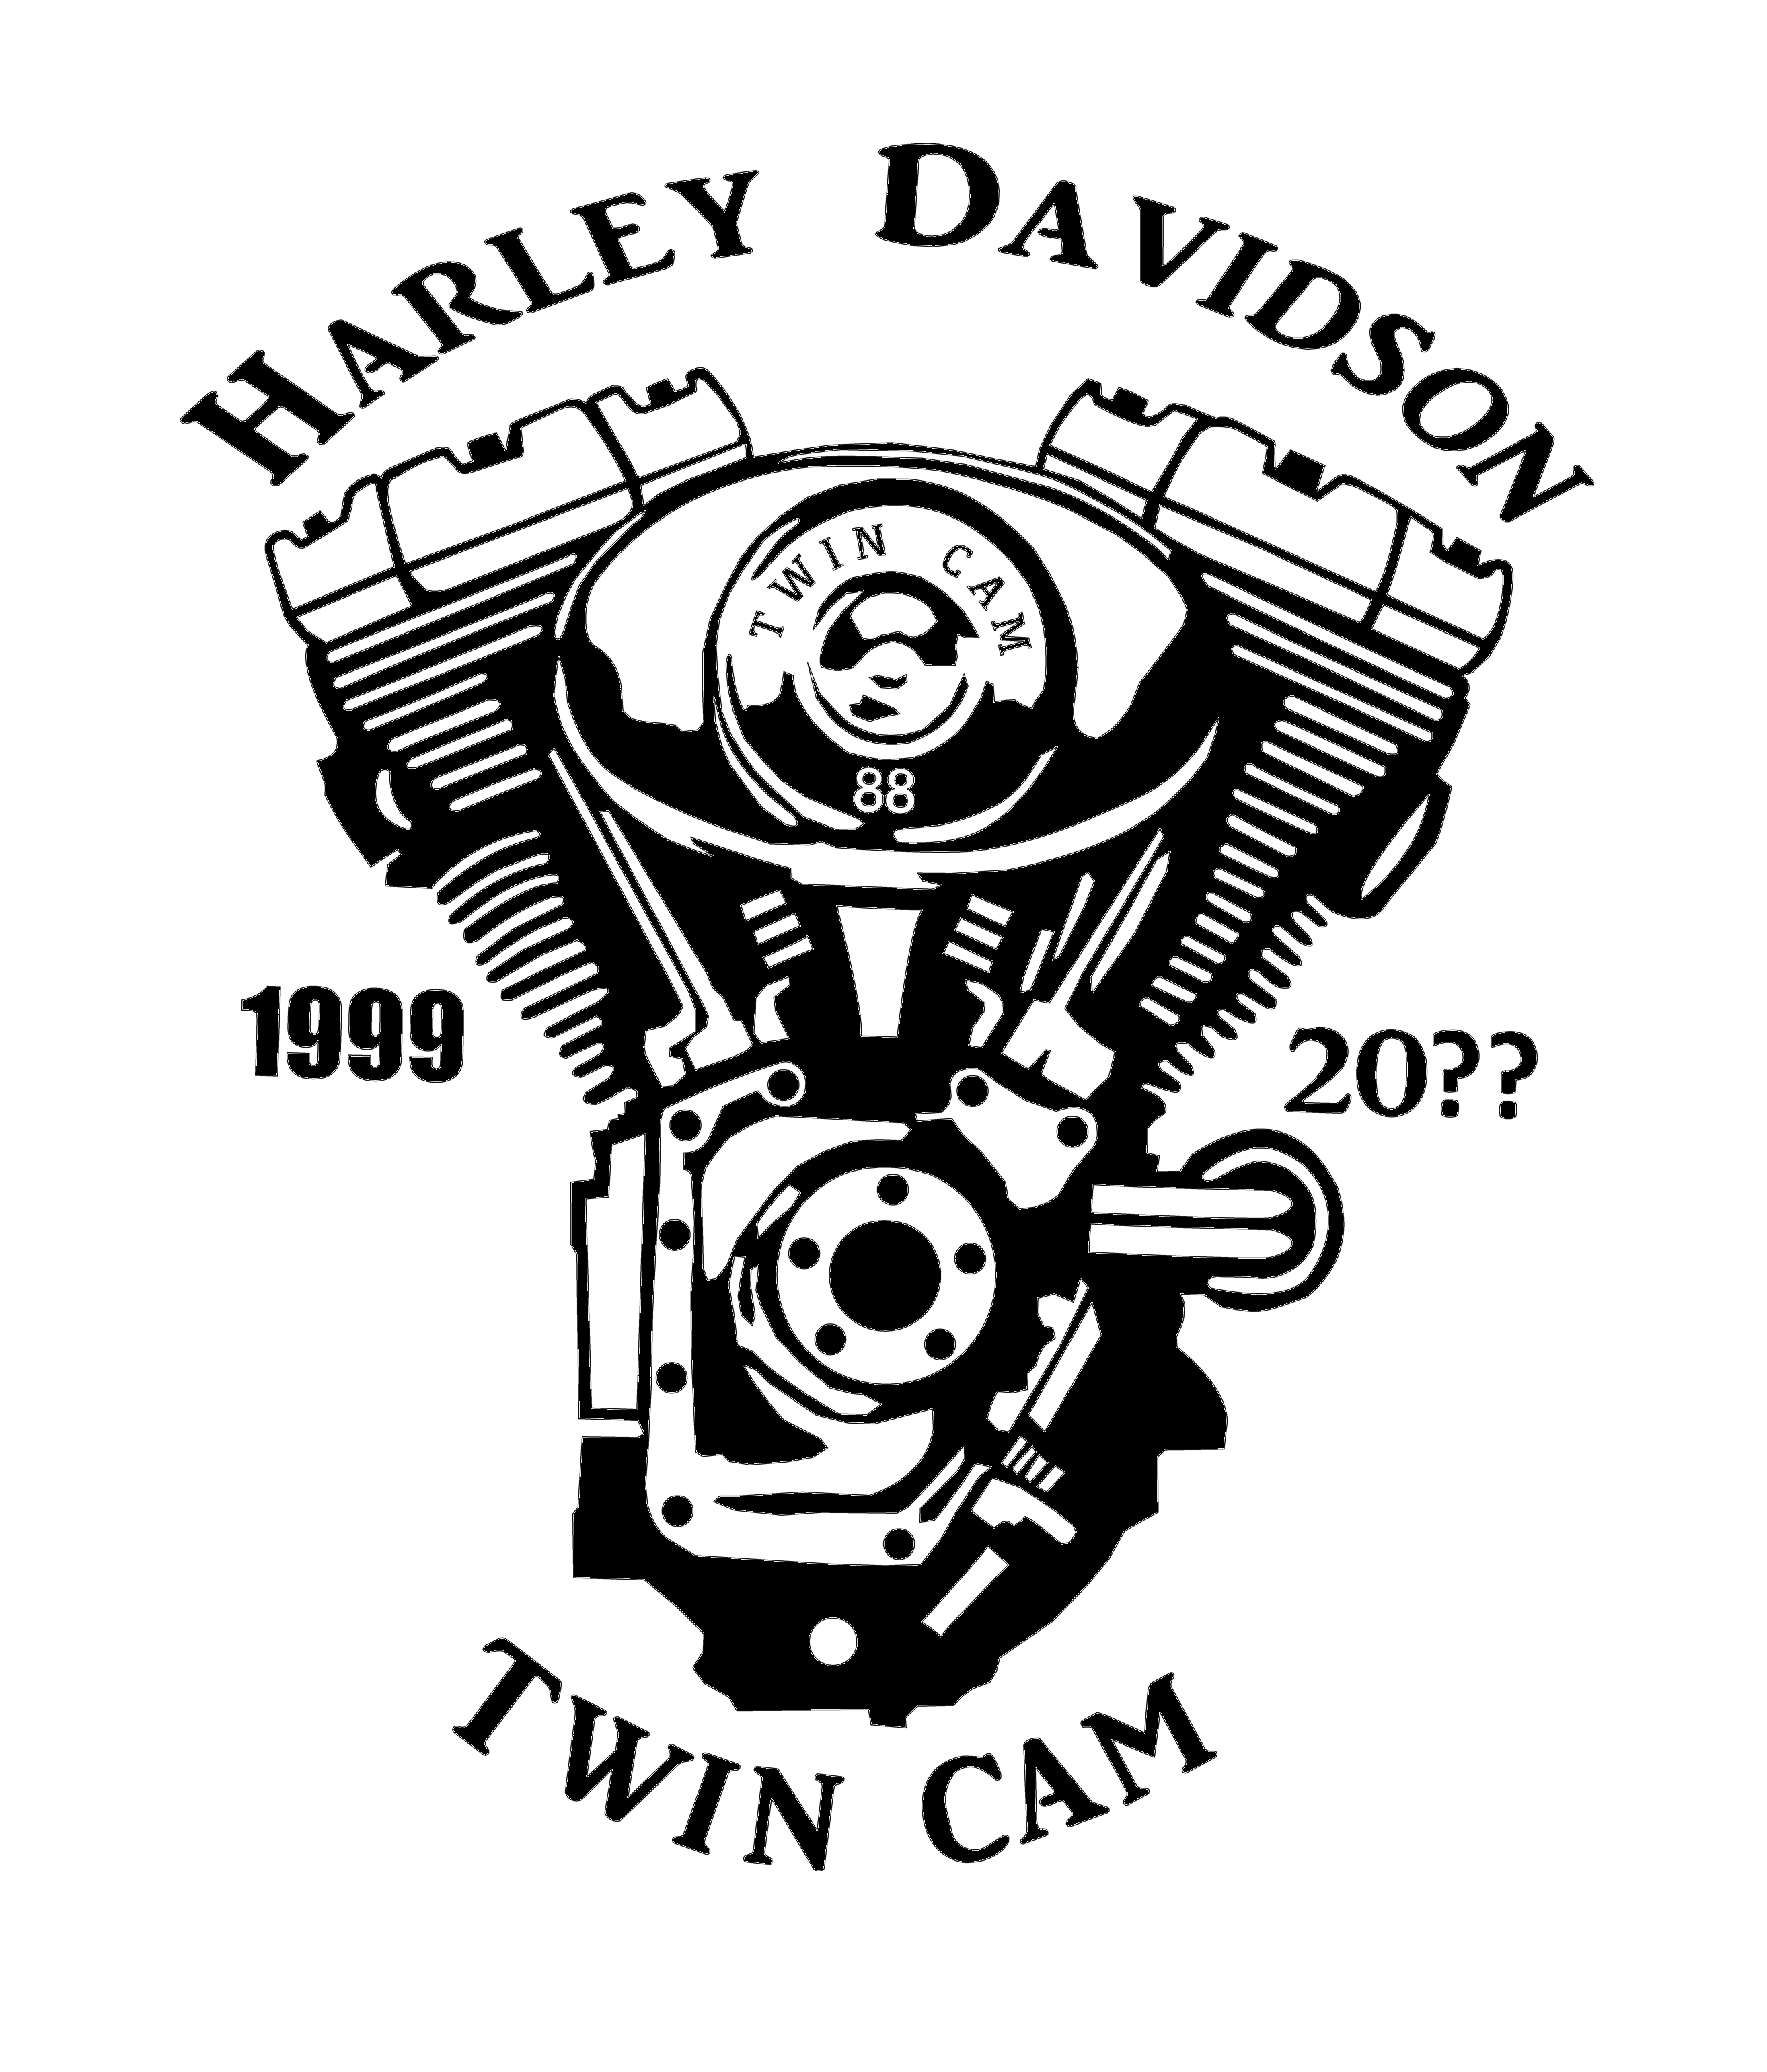 Harley V Twin Engine Diagram. Diagram. Auto Wiring Diagram